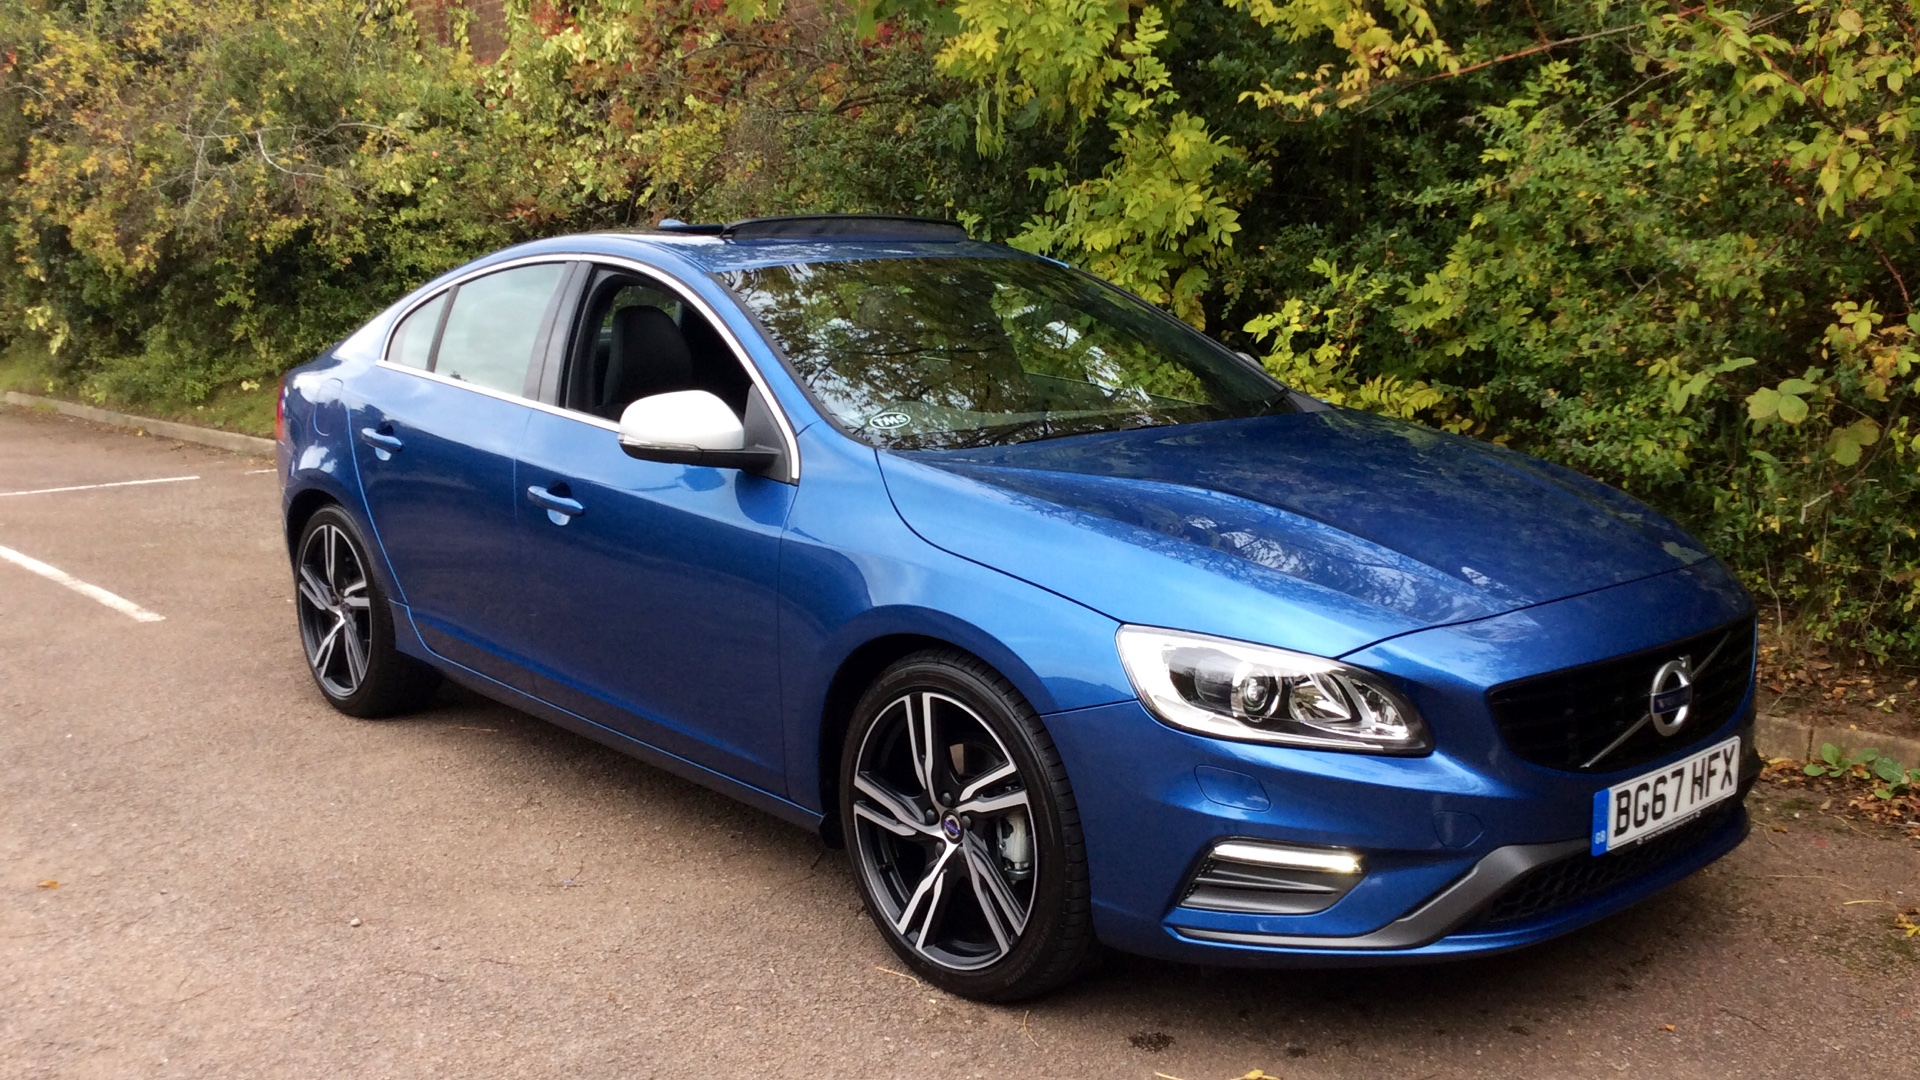 volvo s60 39k new sunroof big spec d4 190bhp r design lux nav automatic used vehicle by. Black Bedroom Furniture Sets. Home Design Ideas